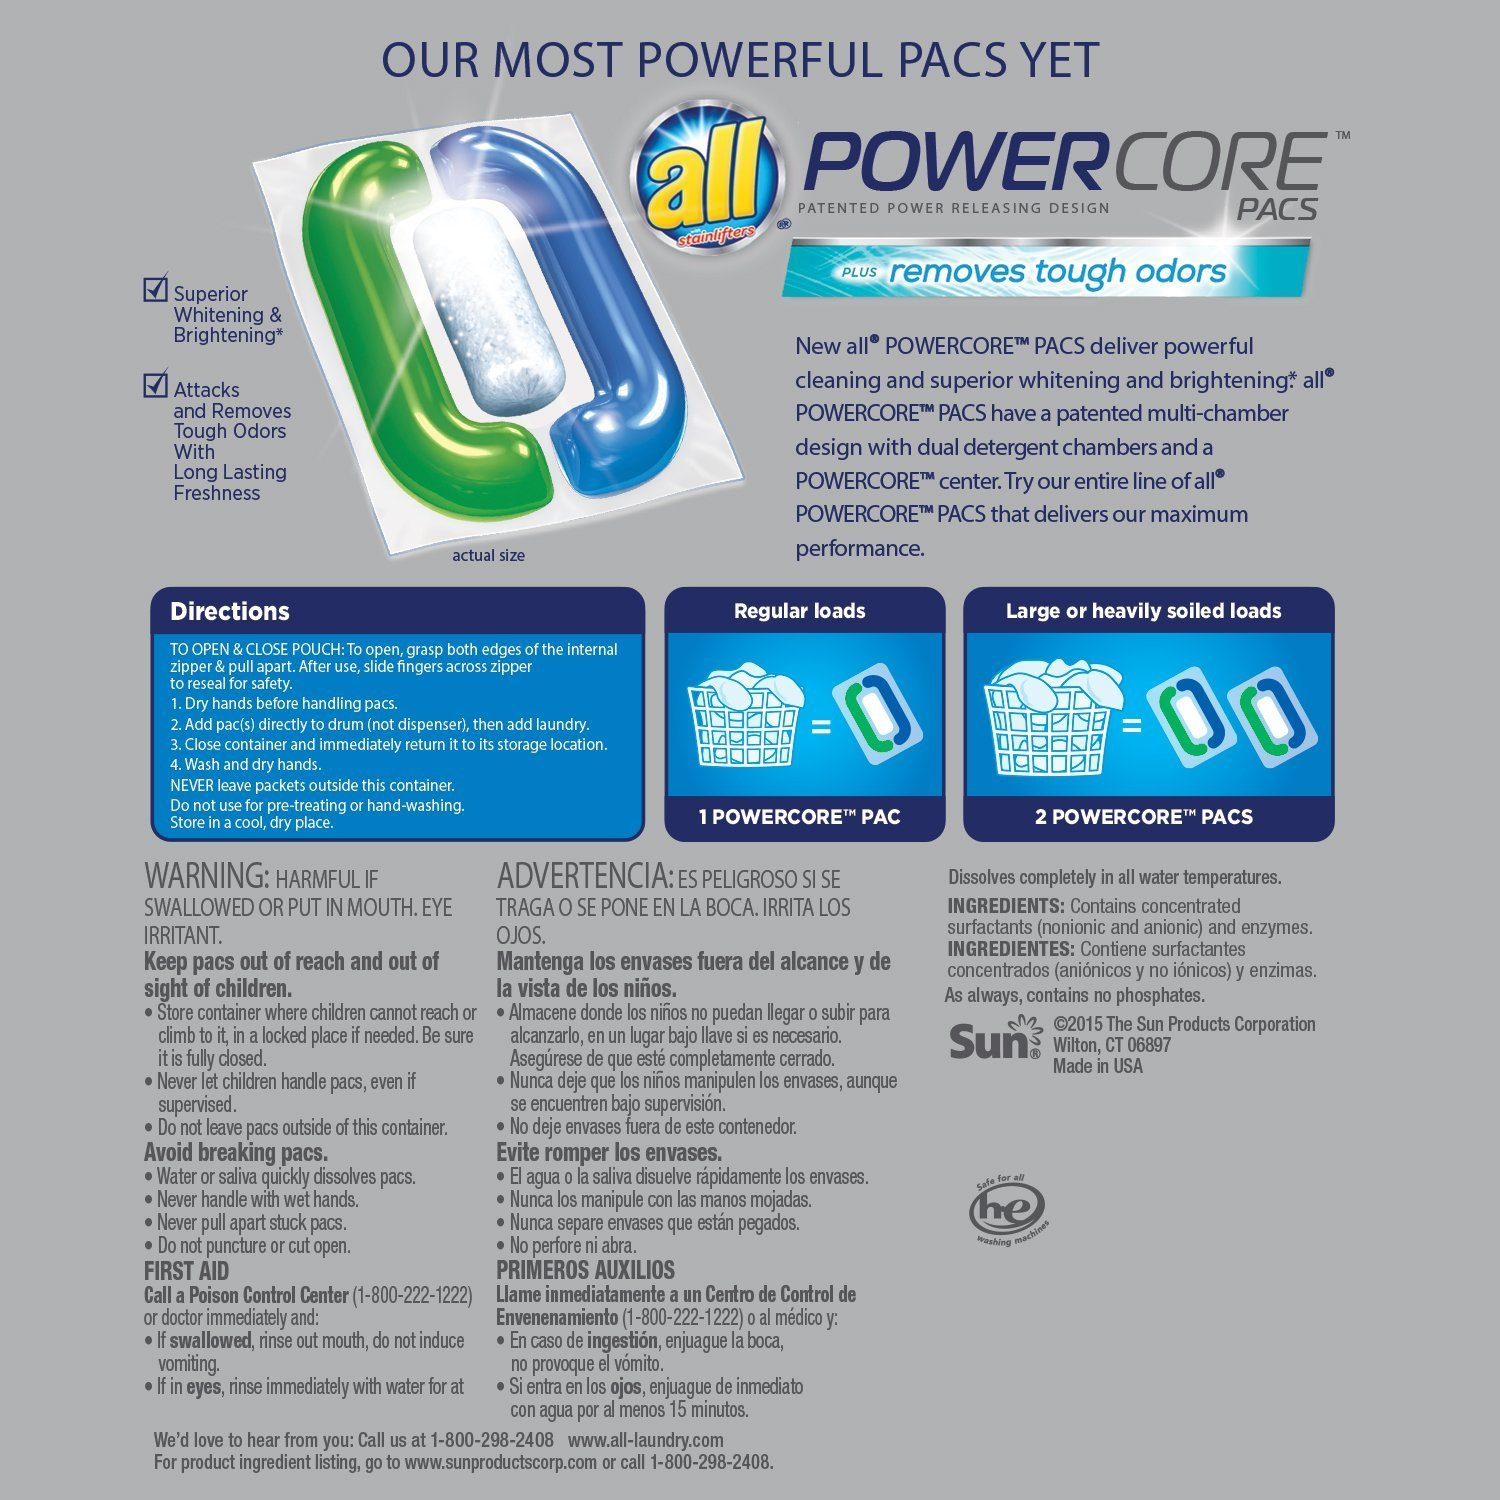 Amazon.com: Todos los PowerCore Pacs detergente de ...